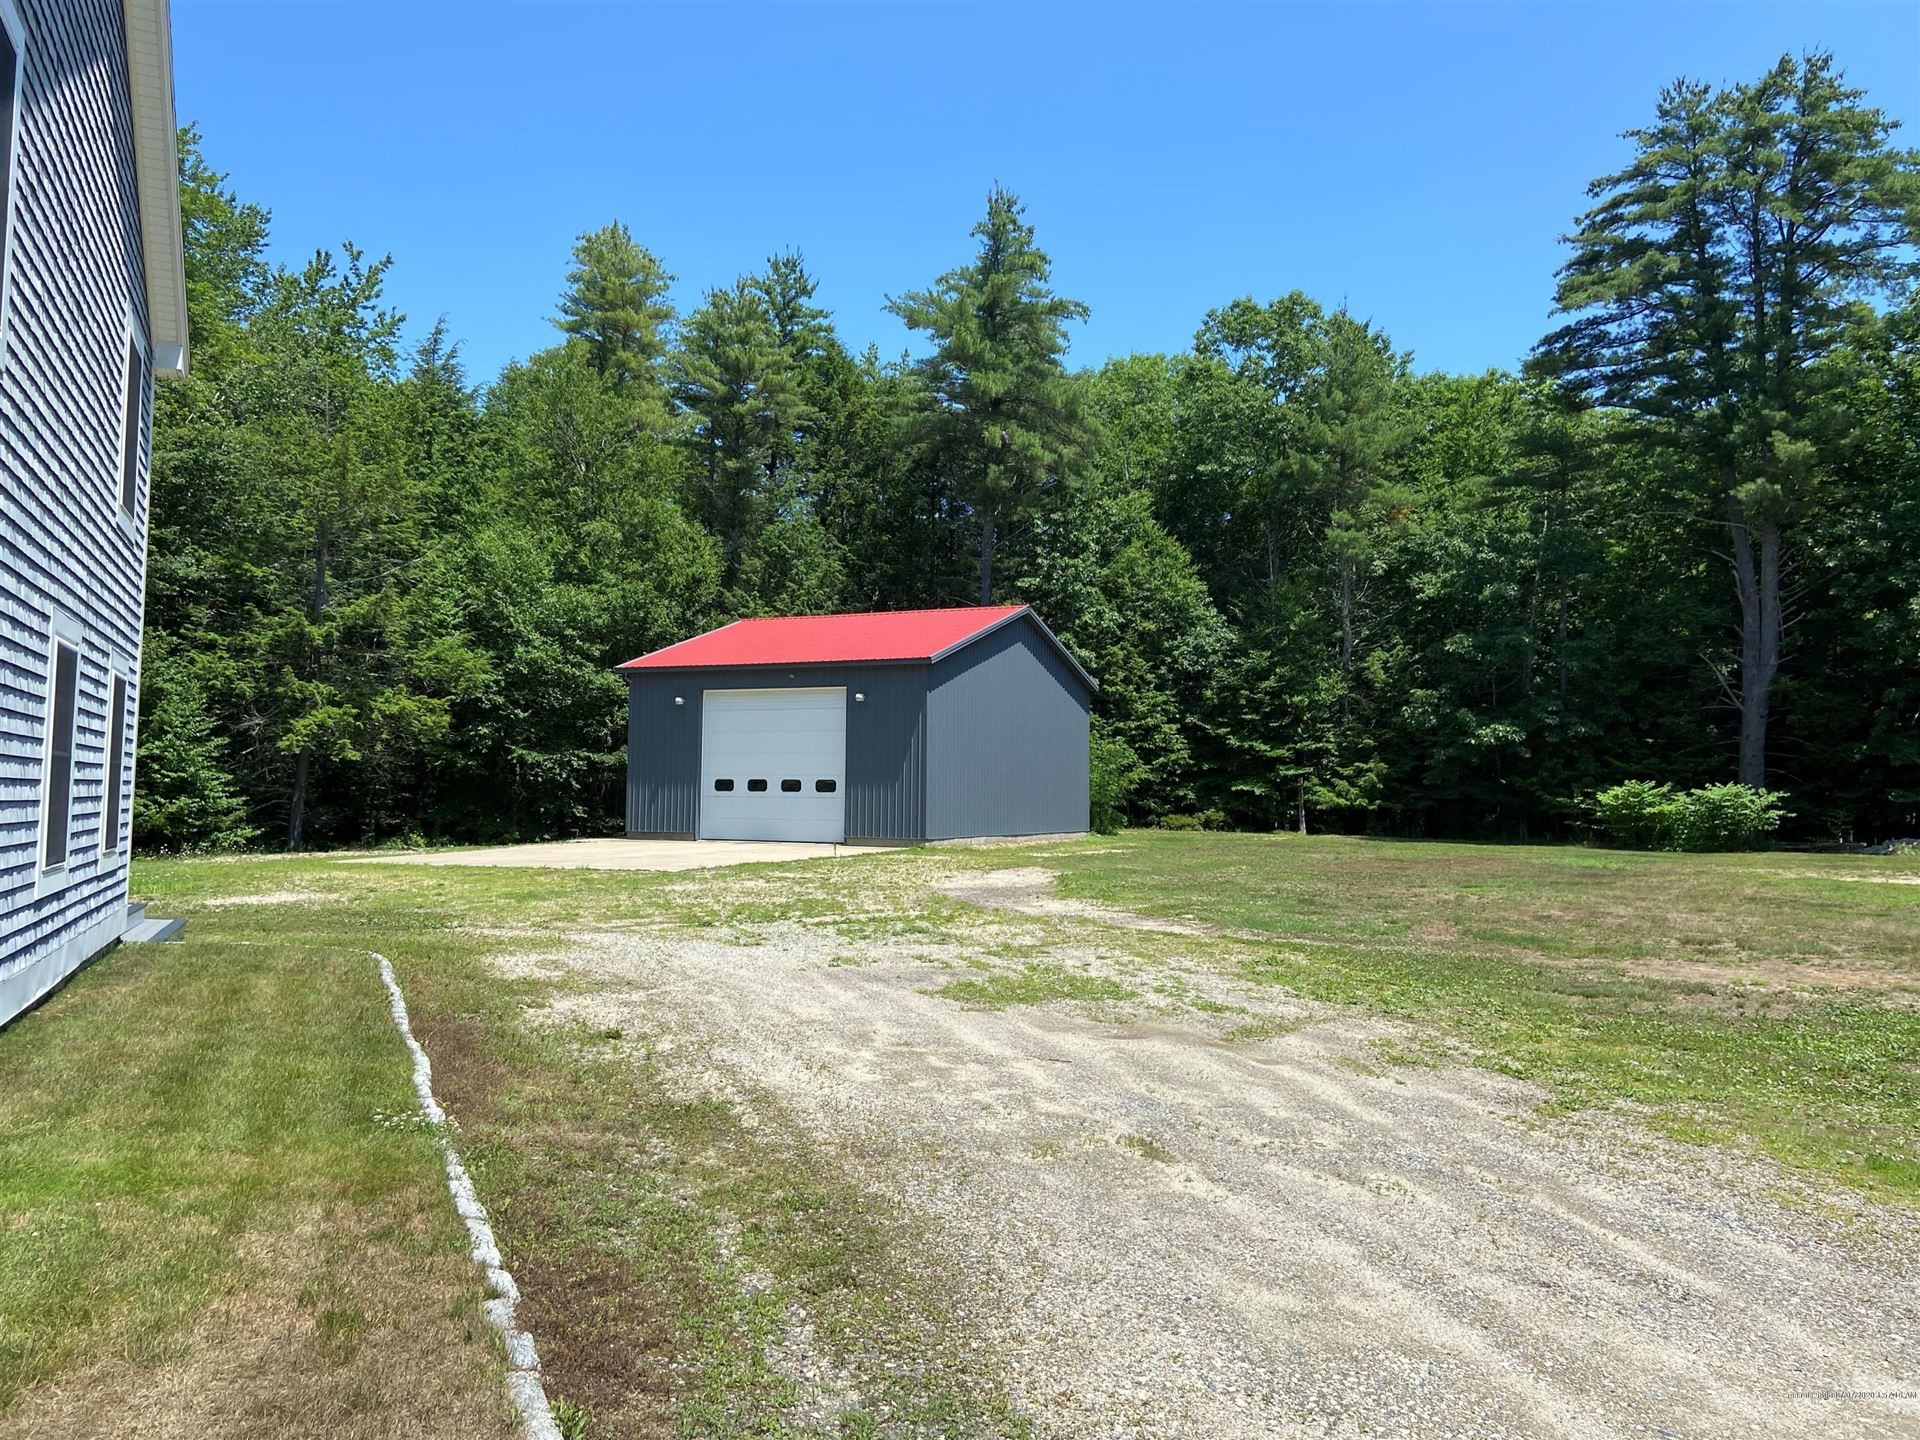 Photo of 45 Frost Hill Road, Eliot, ME 03903 (MLS # 1458826)